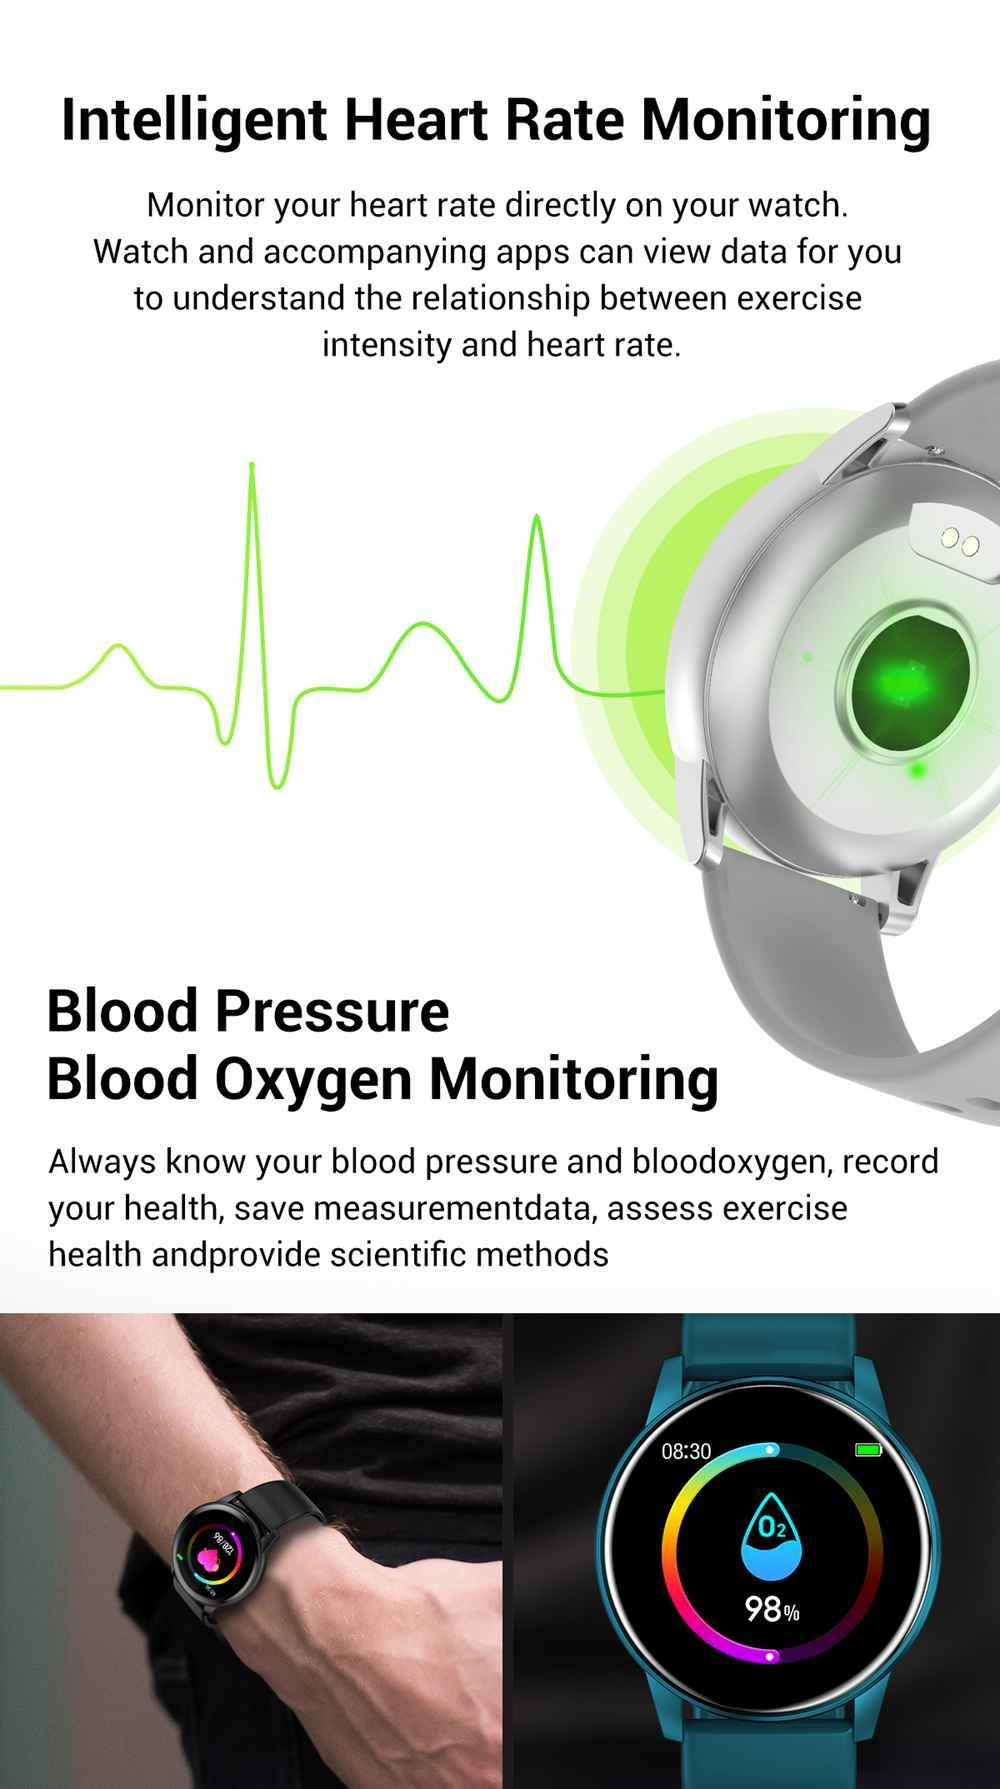 Model-zl01 SmartWatch 1.3 Inch IPS HD Screen IP67 Bluetooth 4.0 Heart Rate Blood Pressure Monitor - White